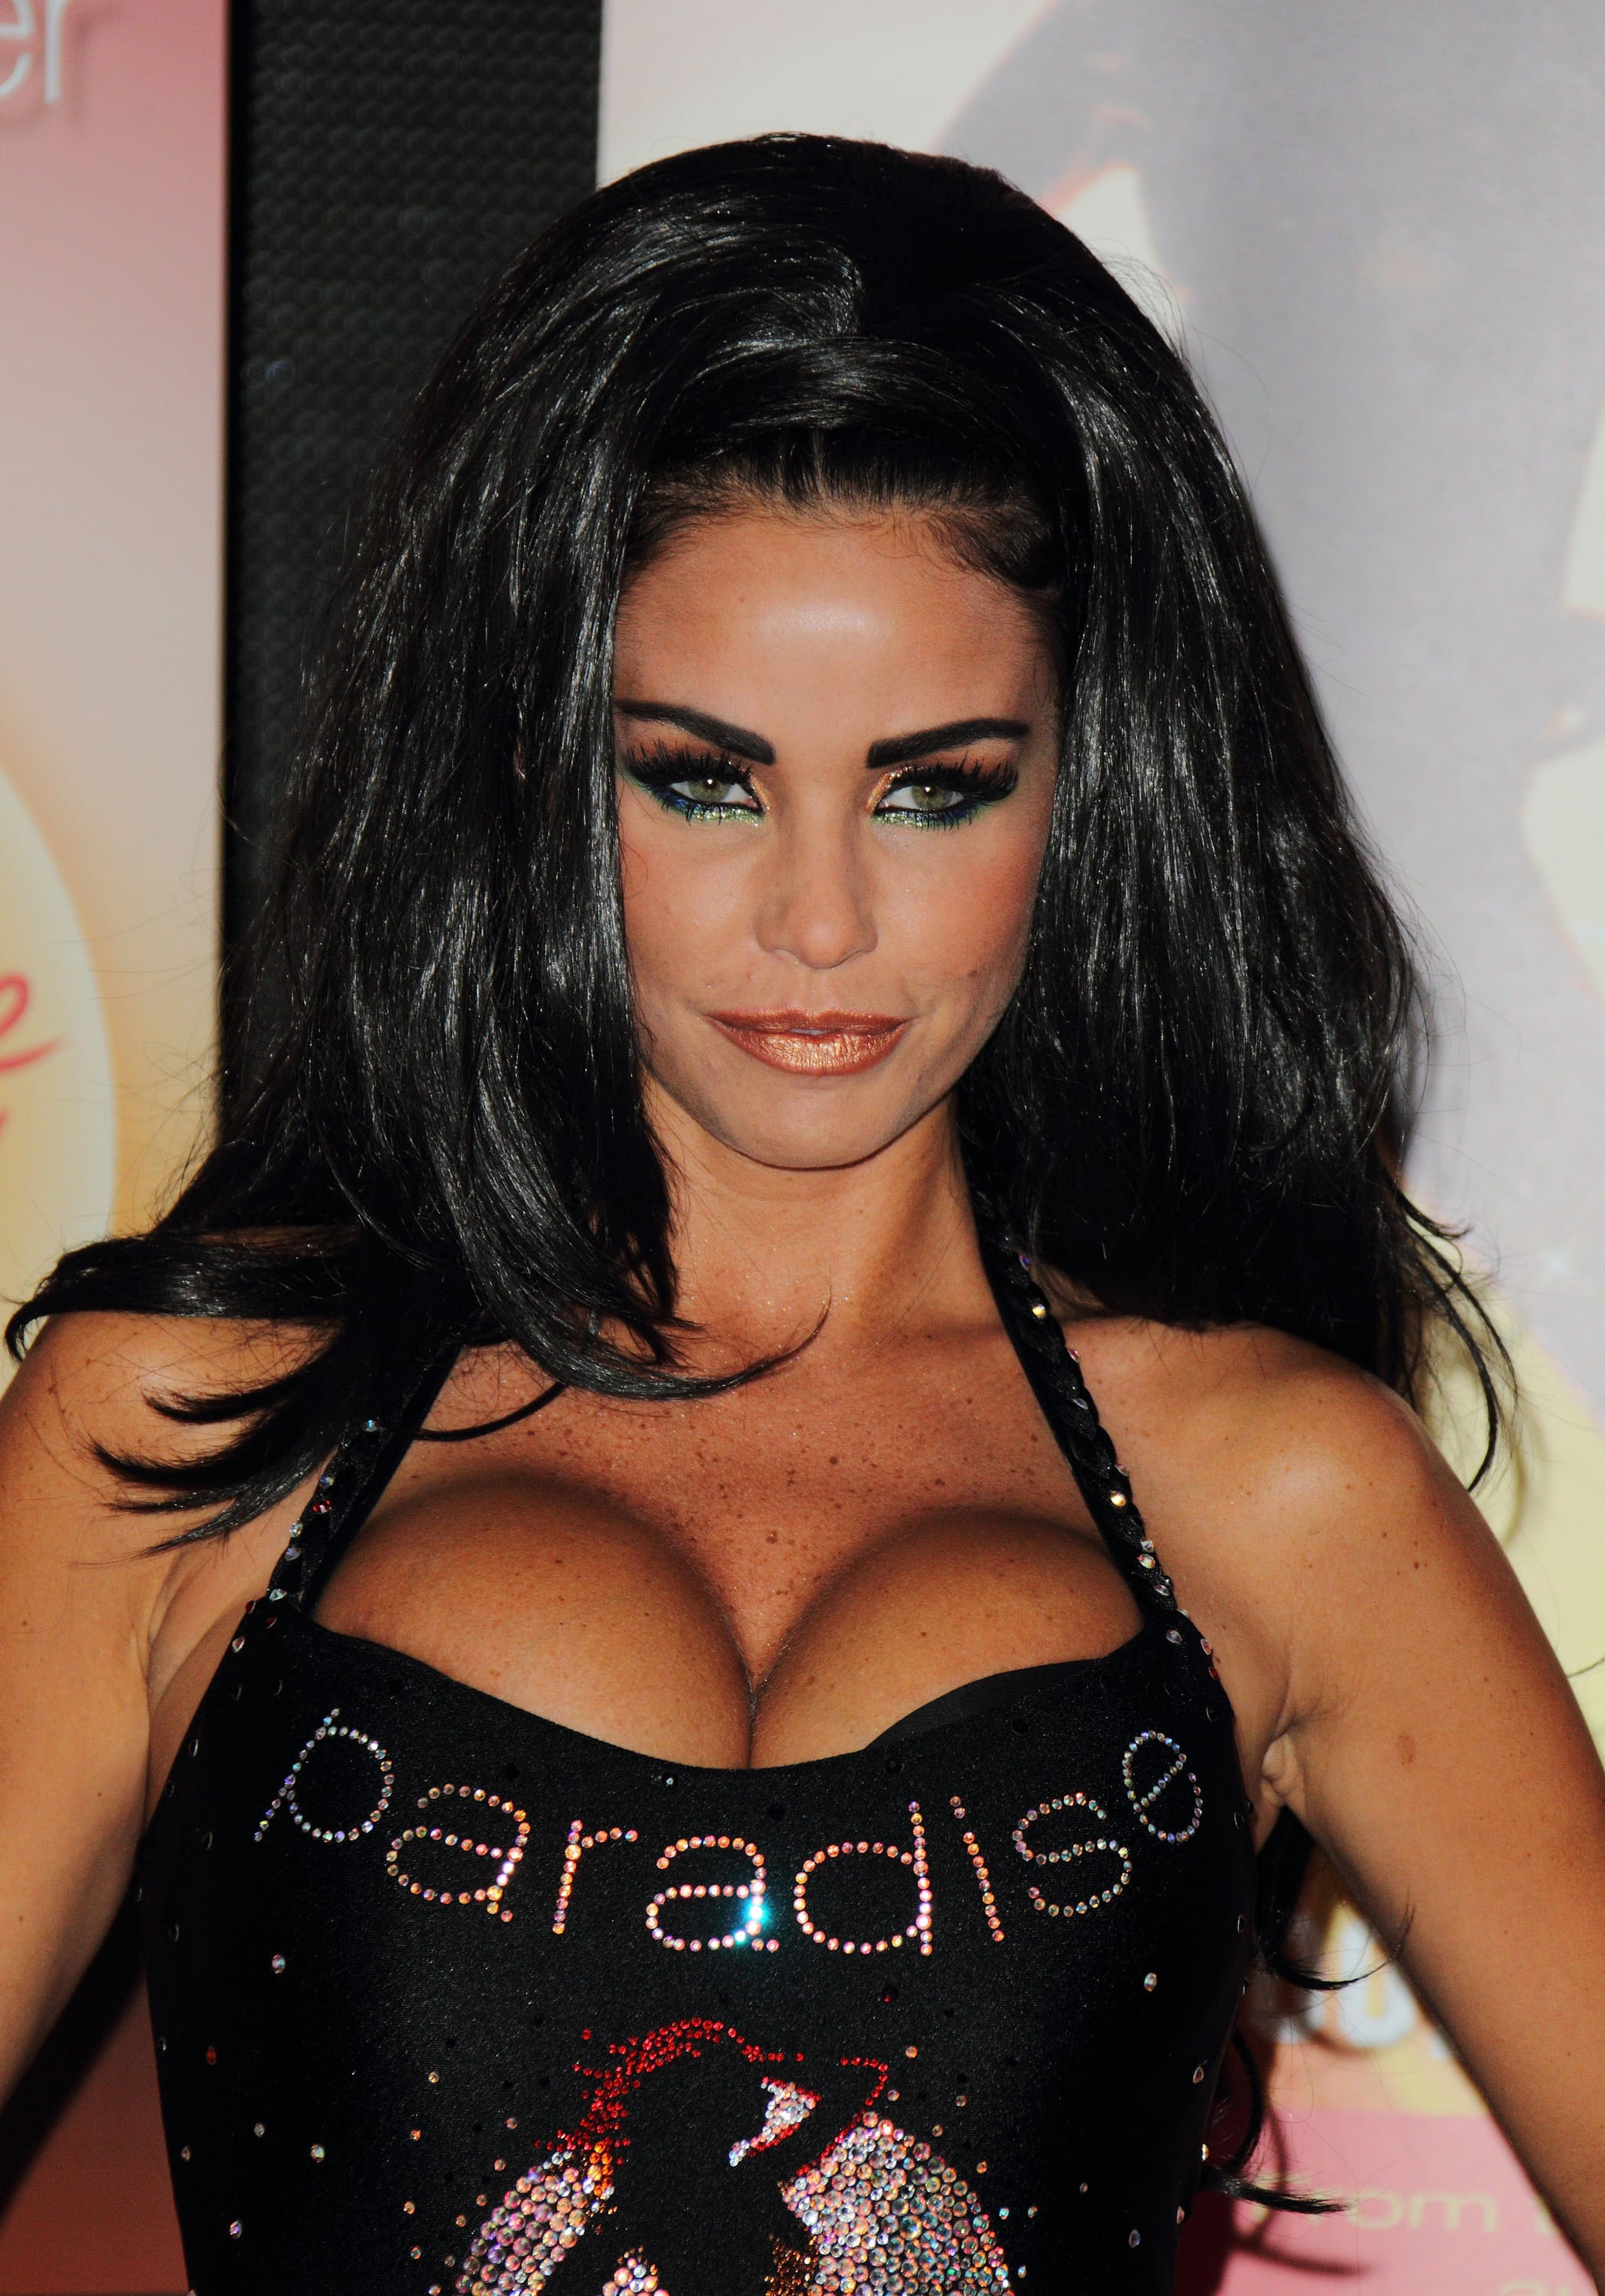 Pictures Of Katie Price At Paradise Book Launch In London